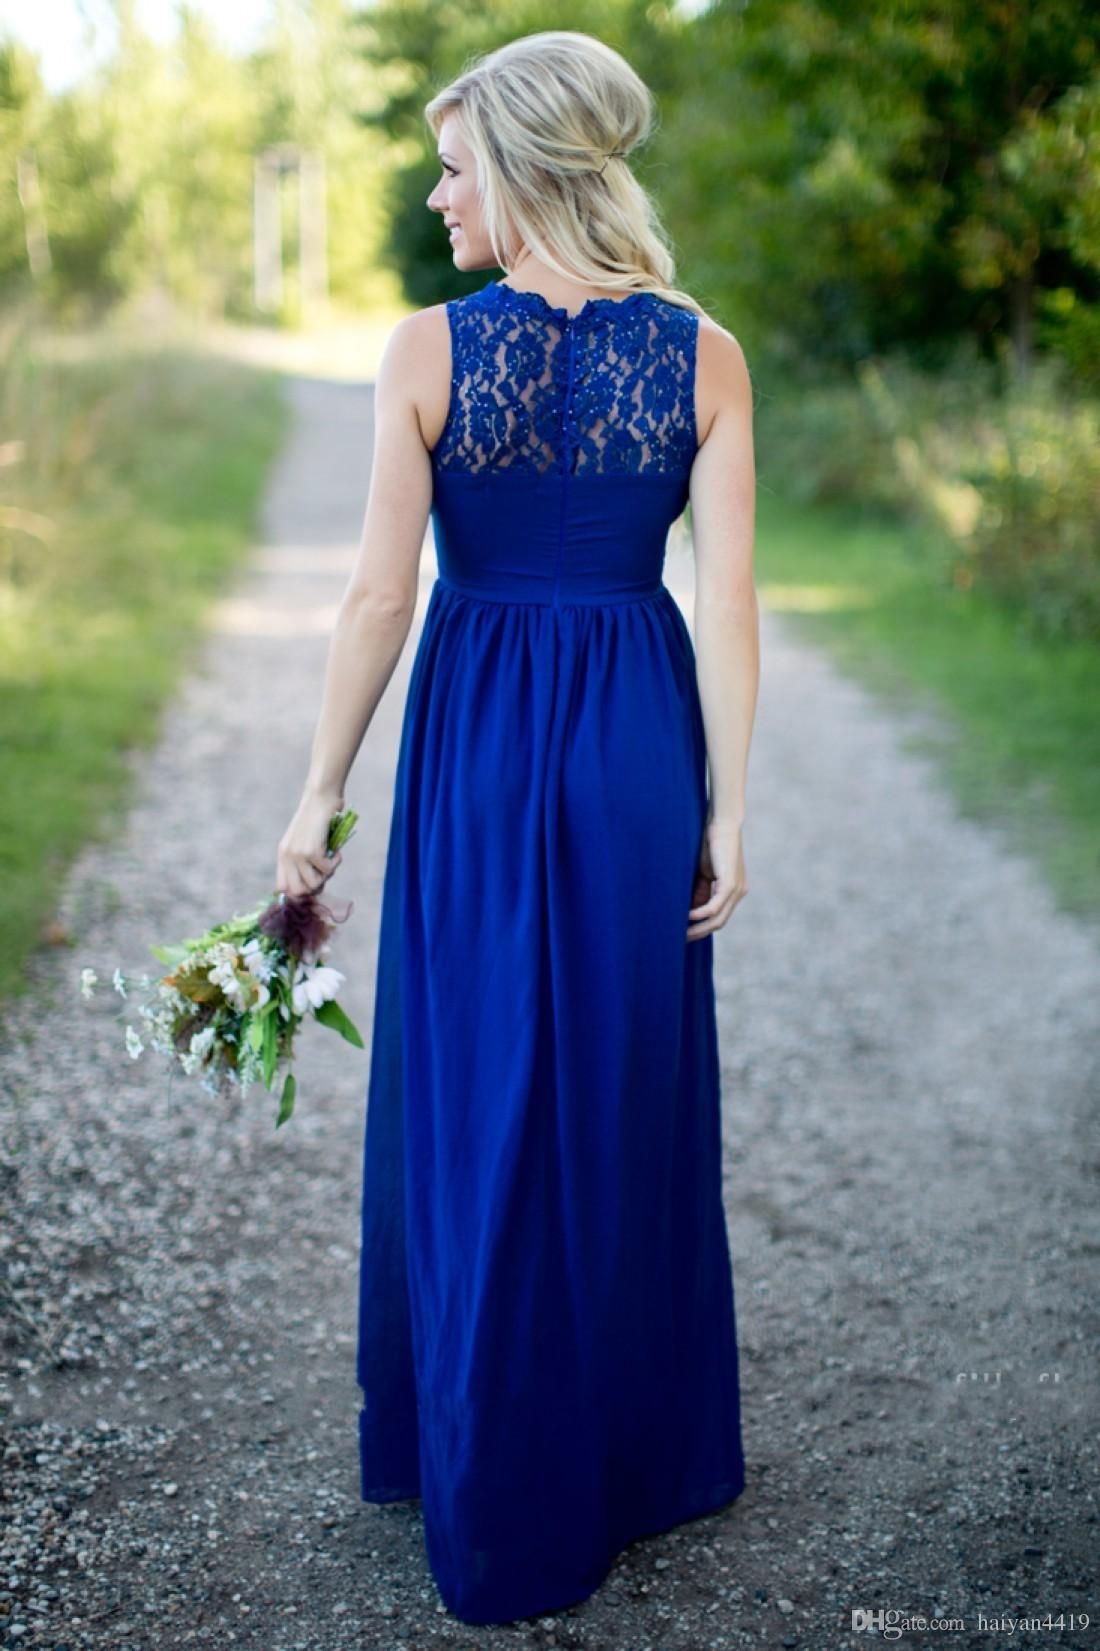 Country Bridesmaid Dresses 2016 Long For Wedding Royal Blue Chiffon Lace  Illusion Neck Sheer With Beads Plus Size Party Maid Honor Under 100 1bdfbed61a37